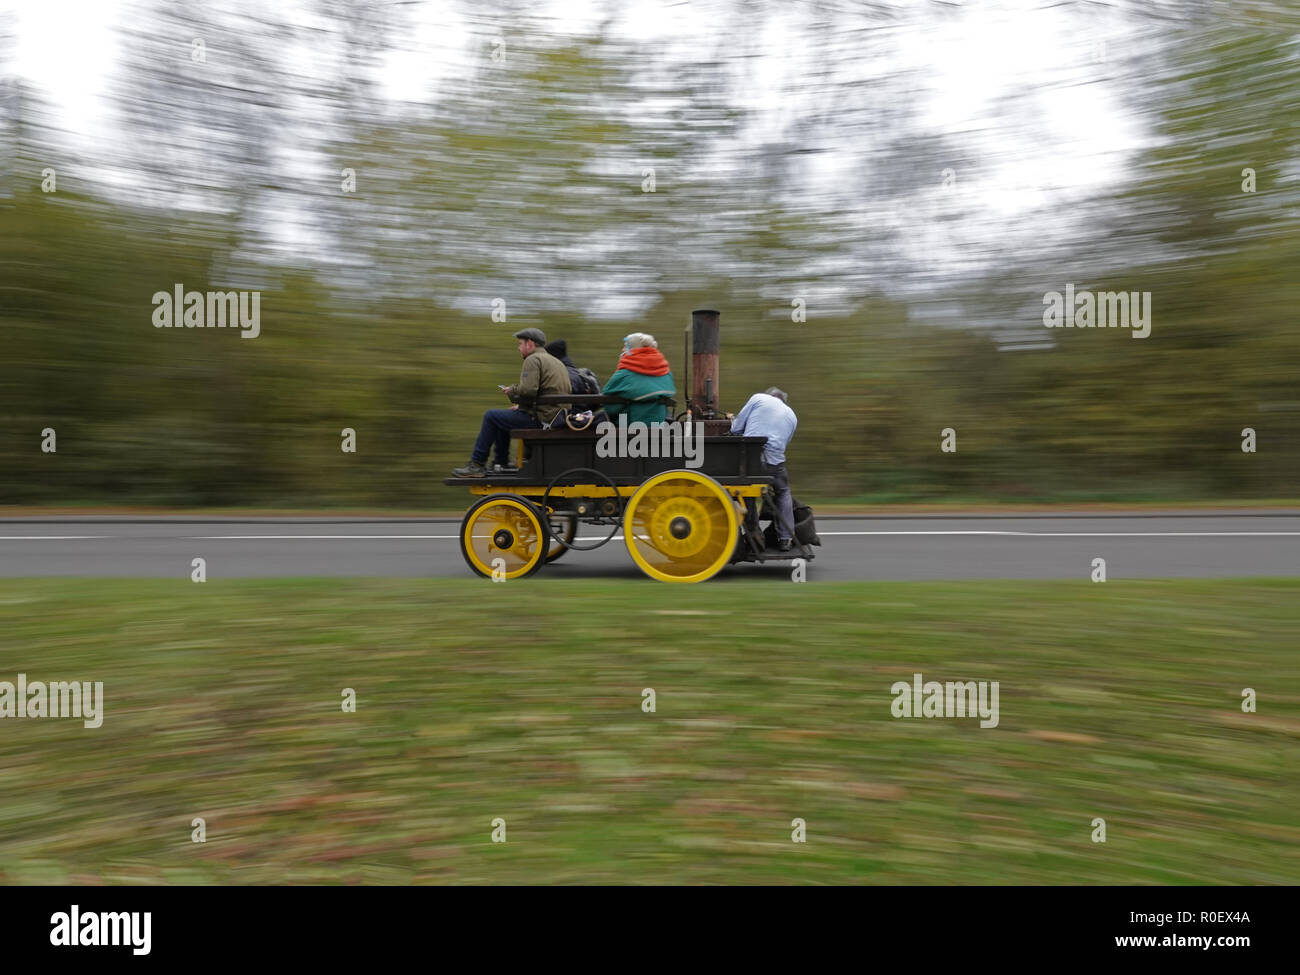 A23 south of Redhill, UK, 4th November 2018 - Bonhams London to Brighton Veteran Car Run supported by Hiscox. From Hyde Park, London to Madeira Drive, Brighton. The world famous event is open to the very oldest engine and steam driven vehicles, manufactured before 1905 Credit: Andy Stehrenberger / Alamy Live News - Stock Image